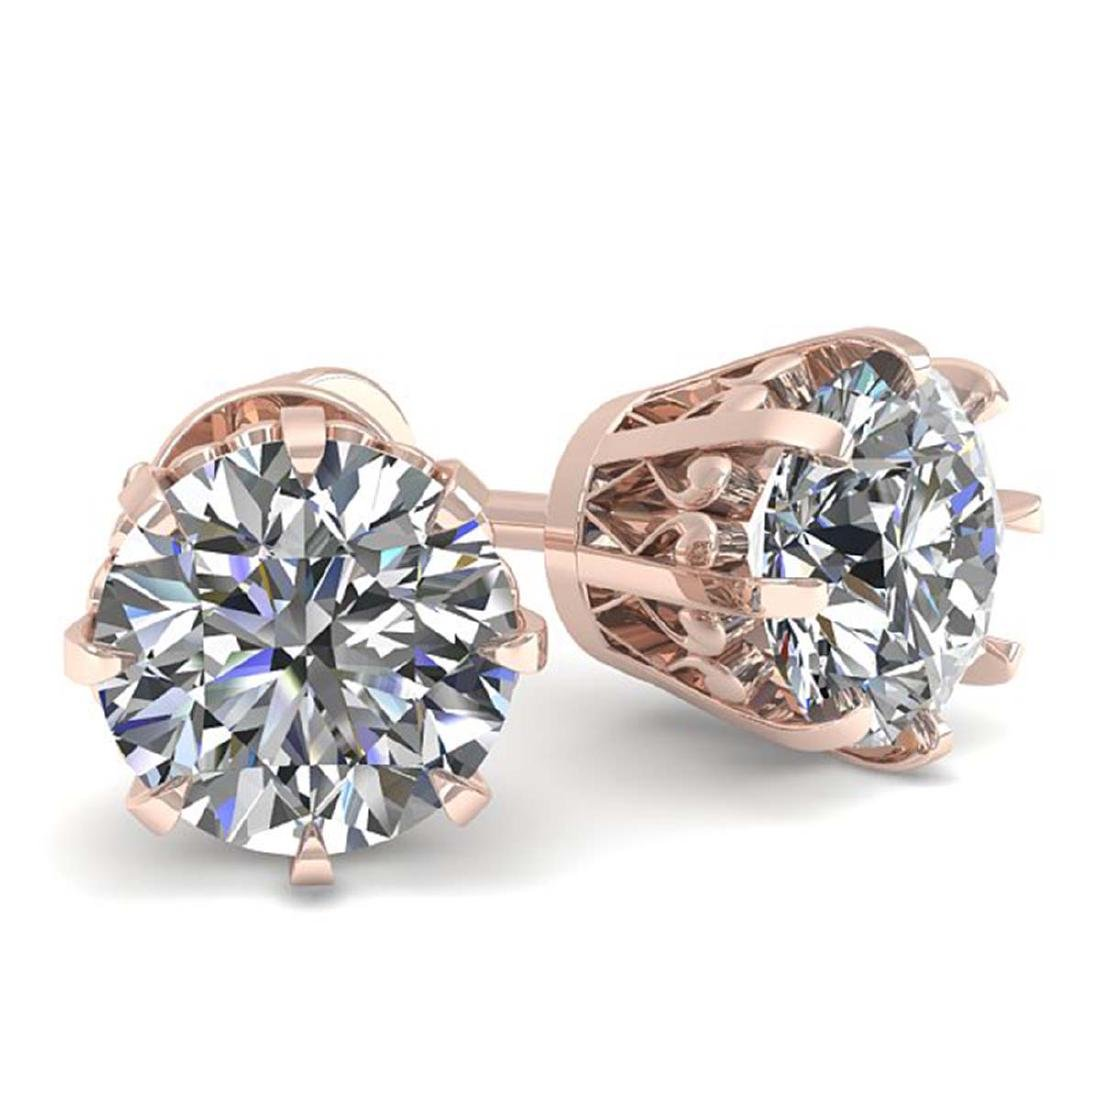 1.03 ctw VS/SI Diamond Stud Earrings 18K Rose Gold -